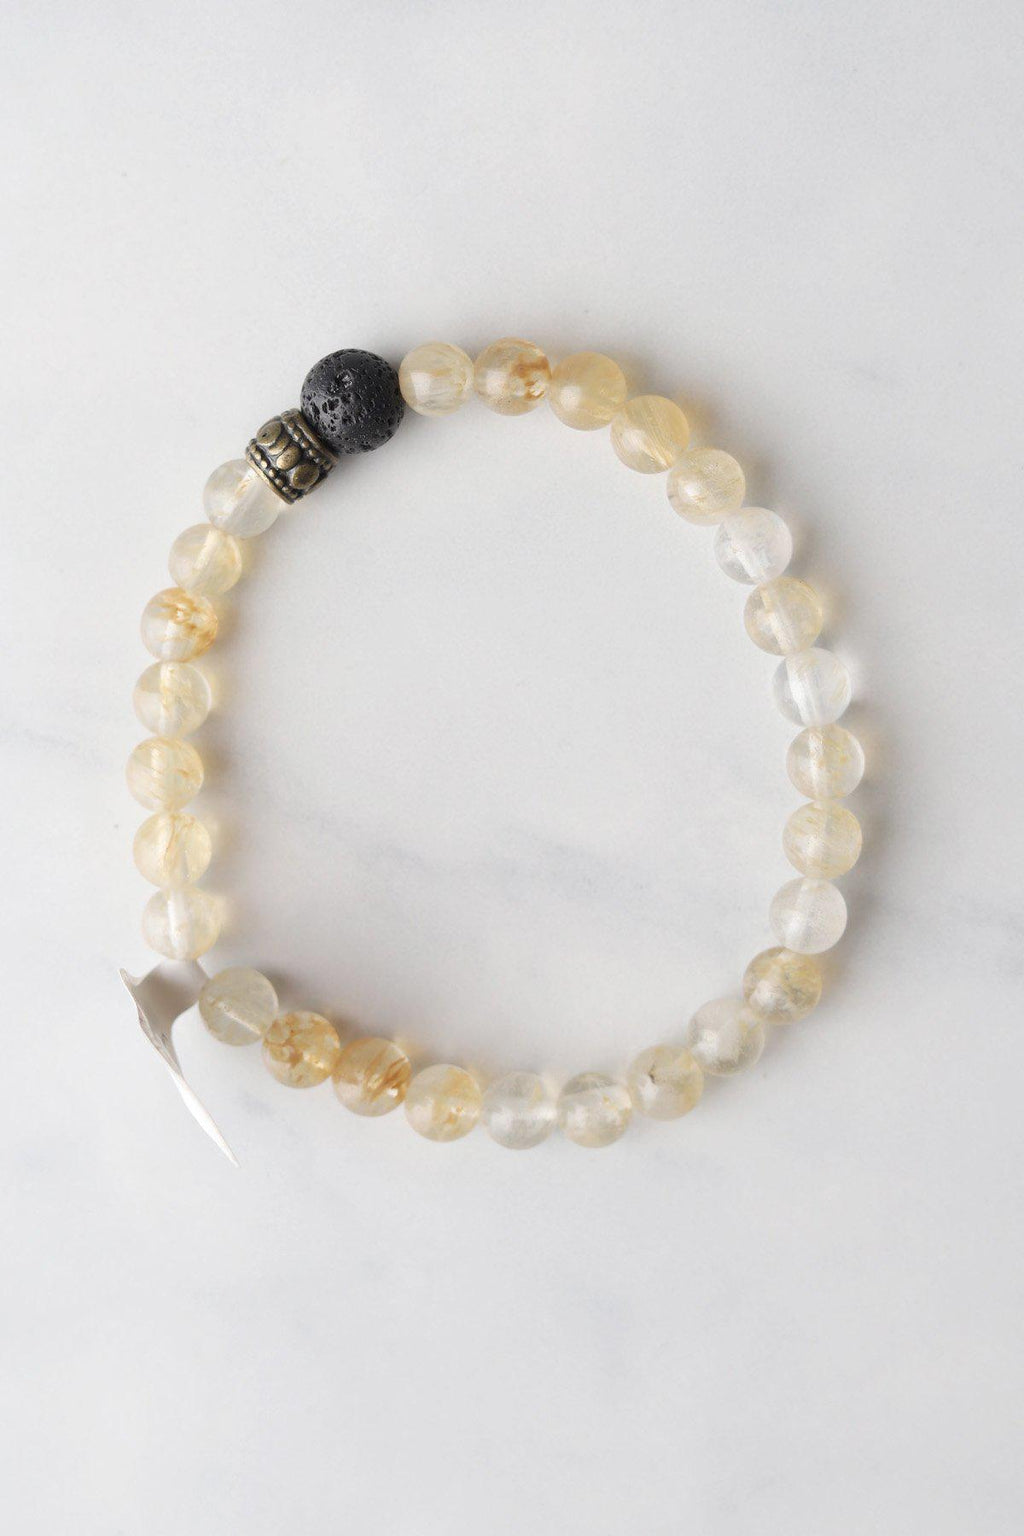 Lemon Quartz Stone Aromatherapy Bracelet - Gallery 512 Boutique